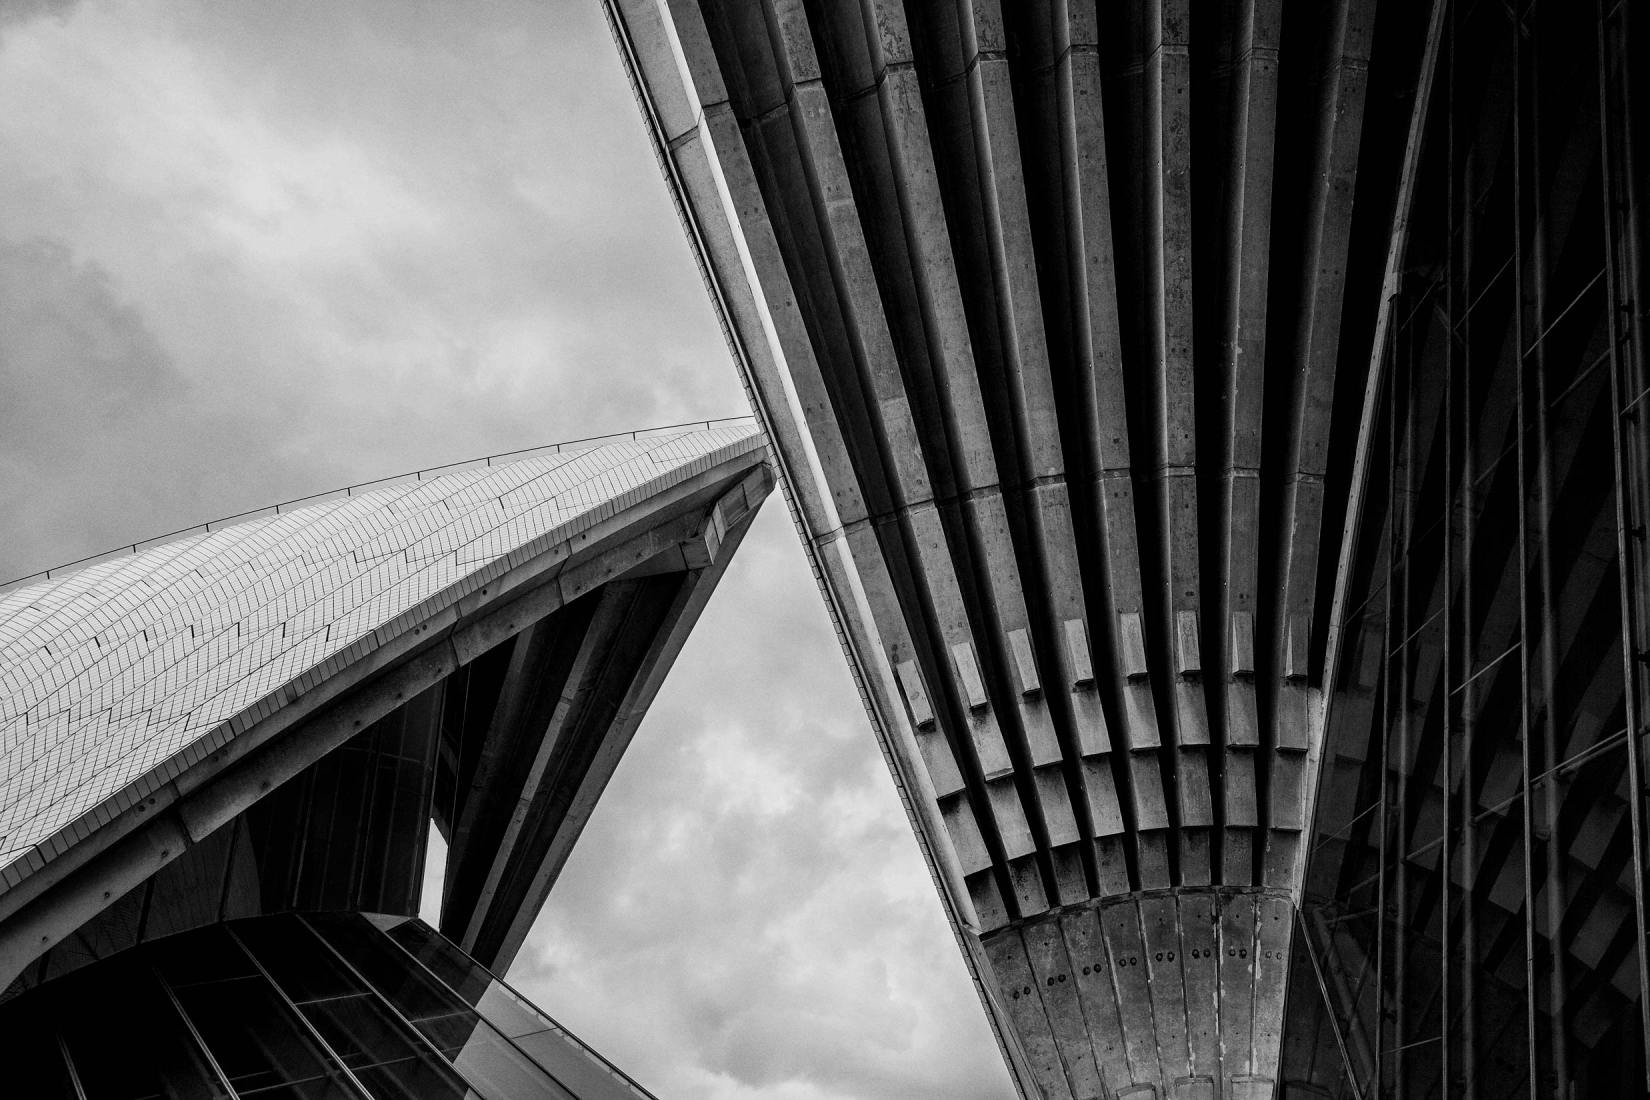 20110319-0005-Melbourne-photographer-Sharon-Blance-Sydney-Opera-House-copy